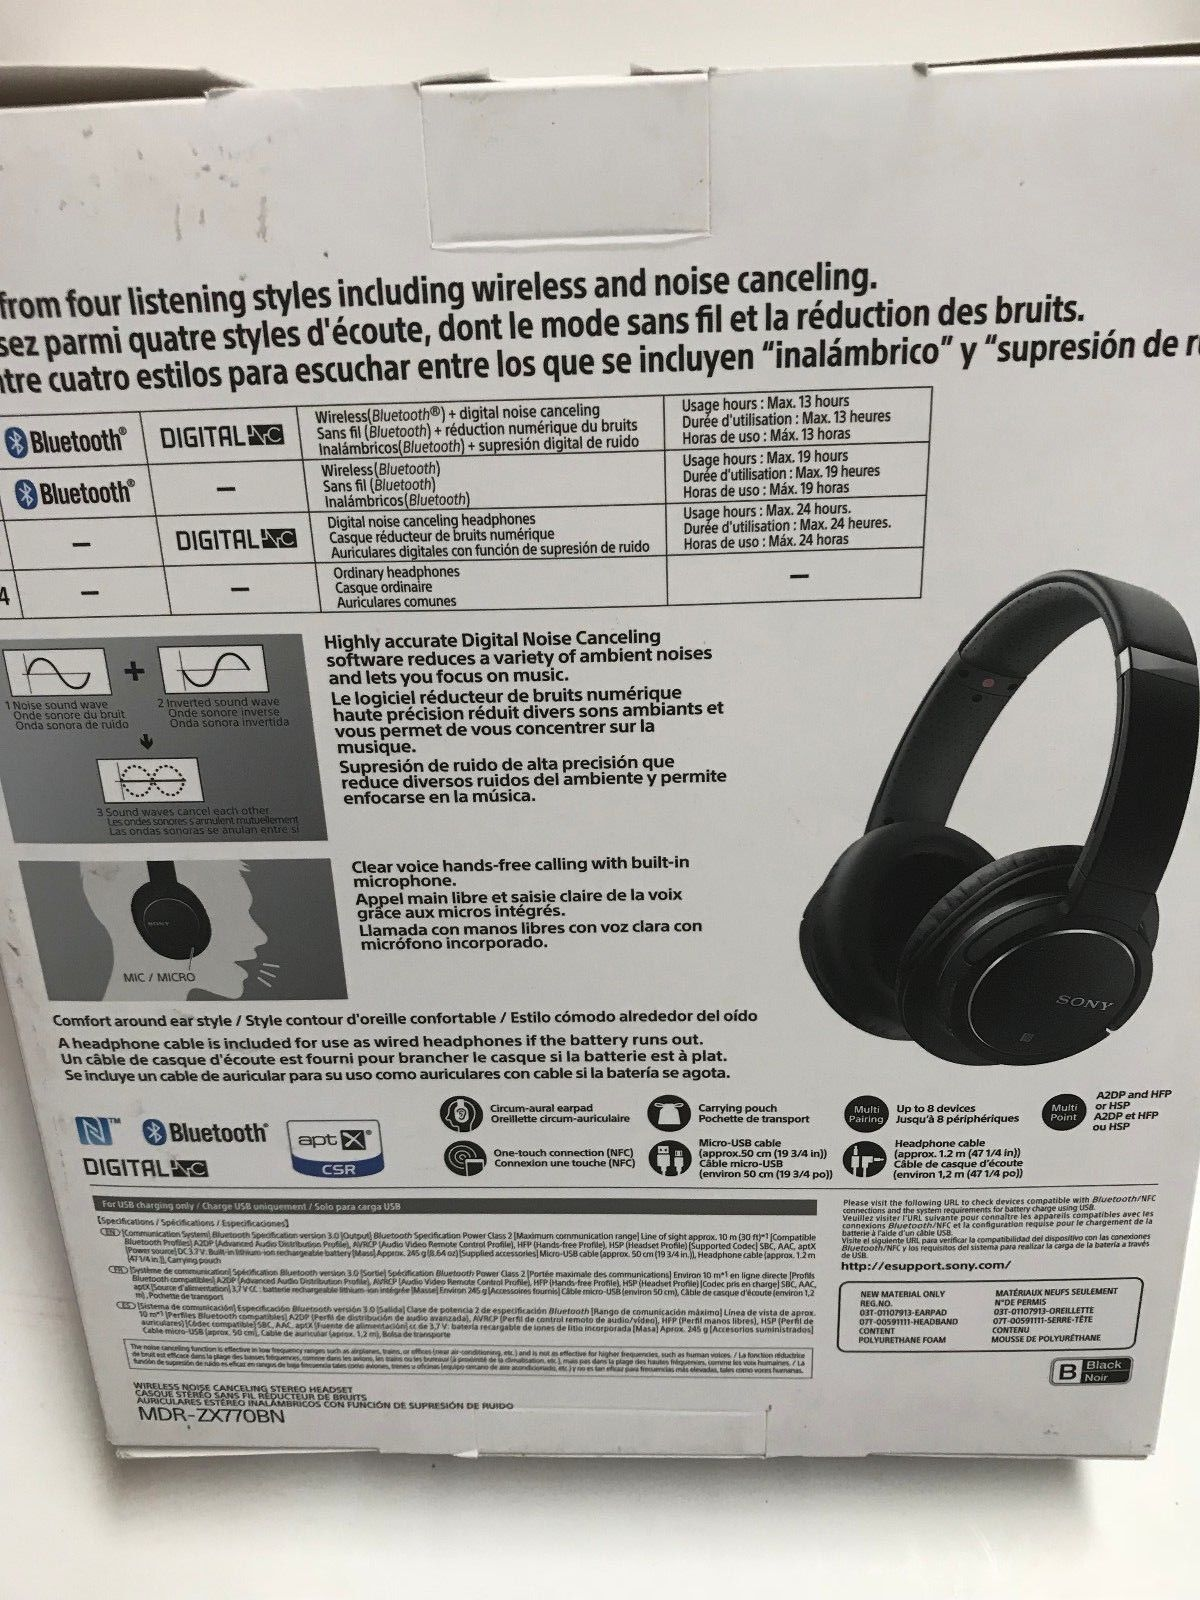 Sony Mdr Zx770bn Wireless Noise Cancelling And 18 Similar Items